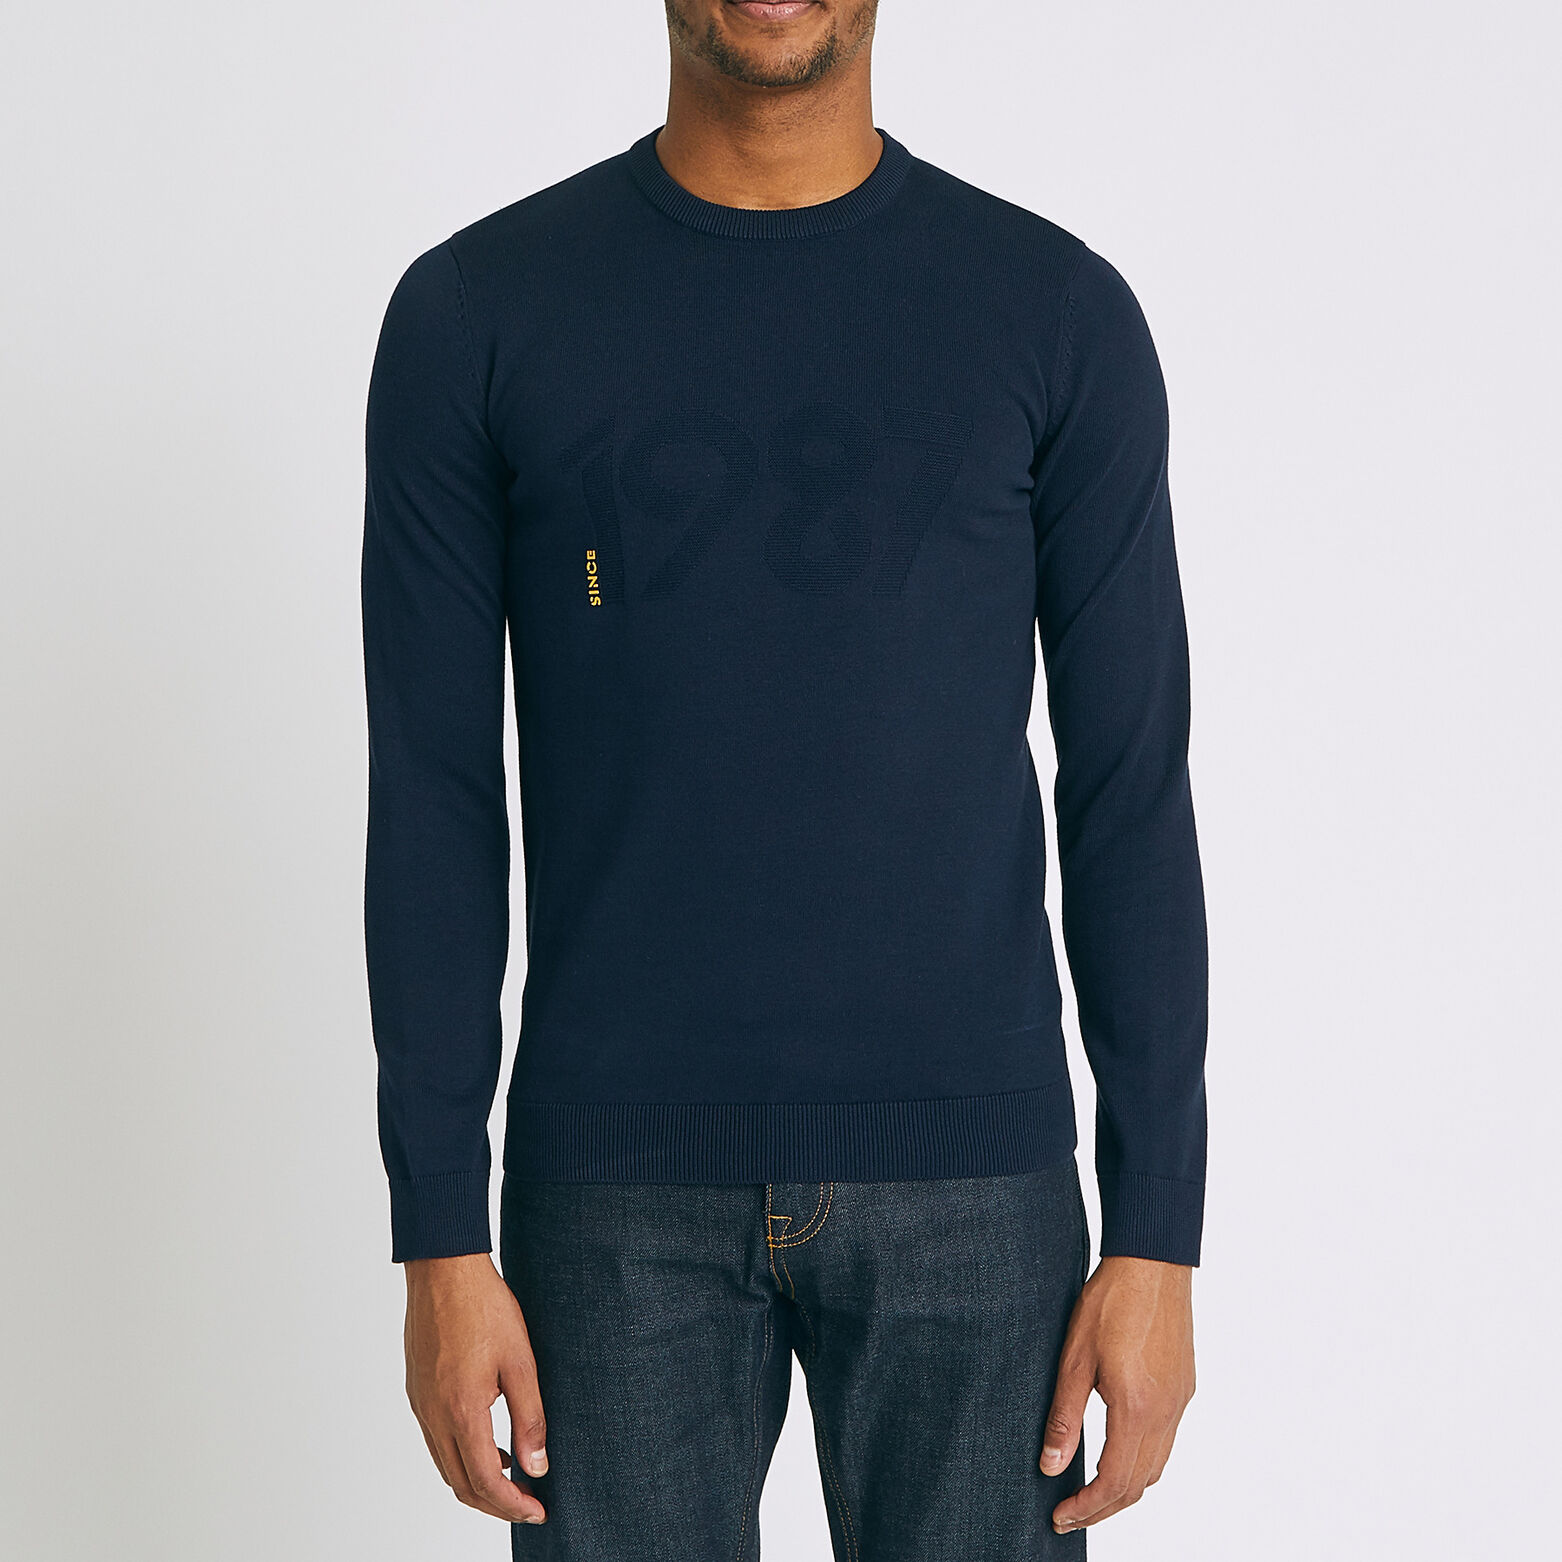 Pull Since 1987 maille fantaisie